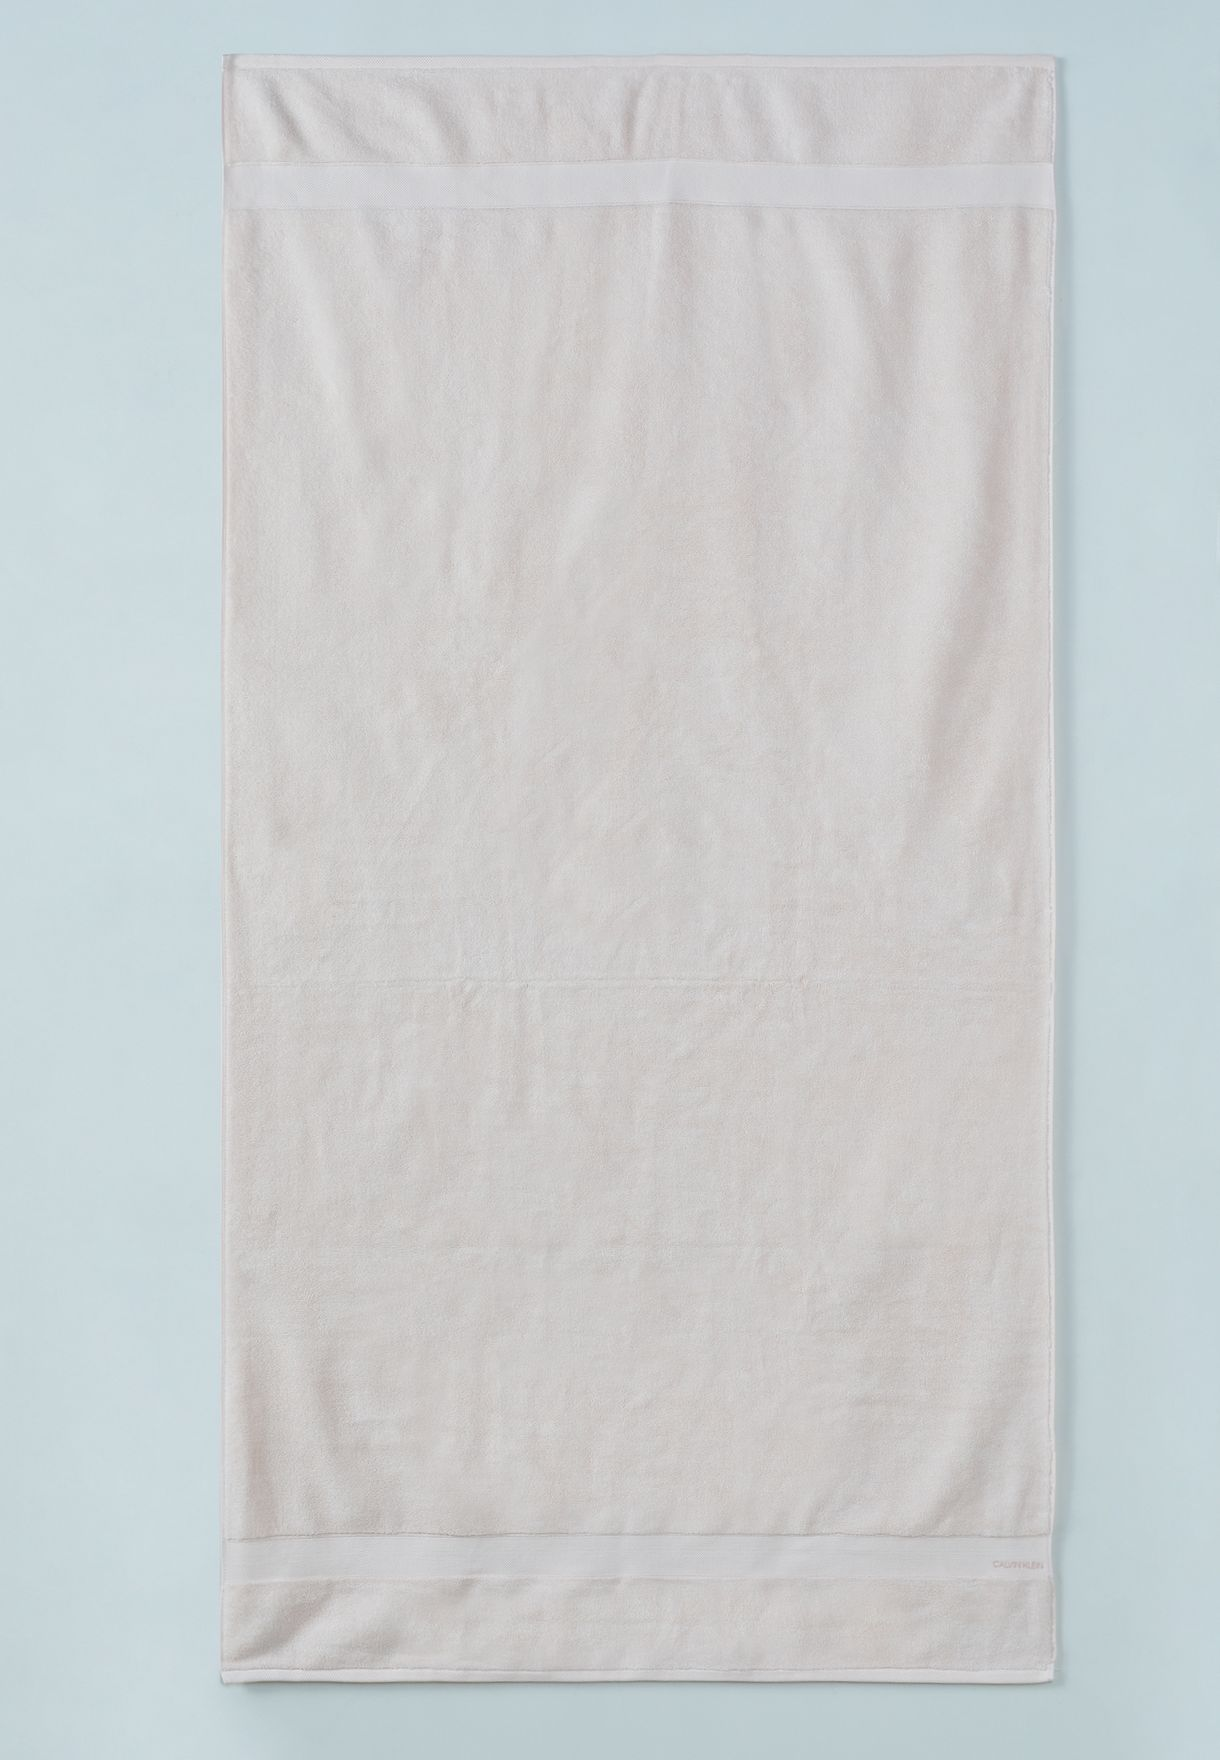 Tracy Bath Sheet 92x183cm